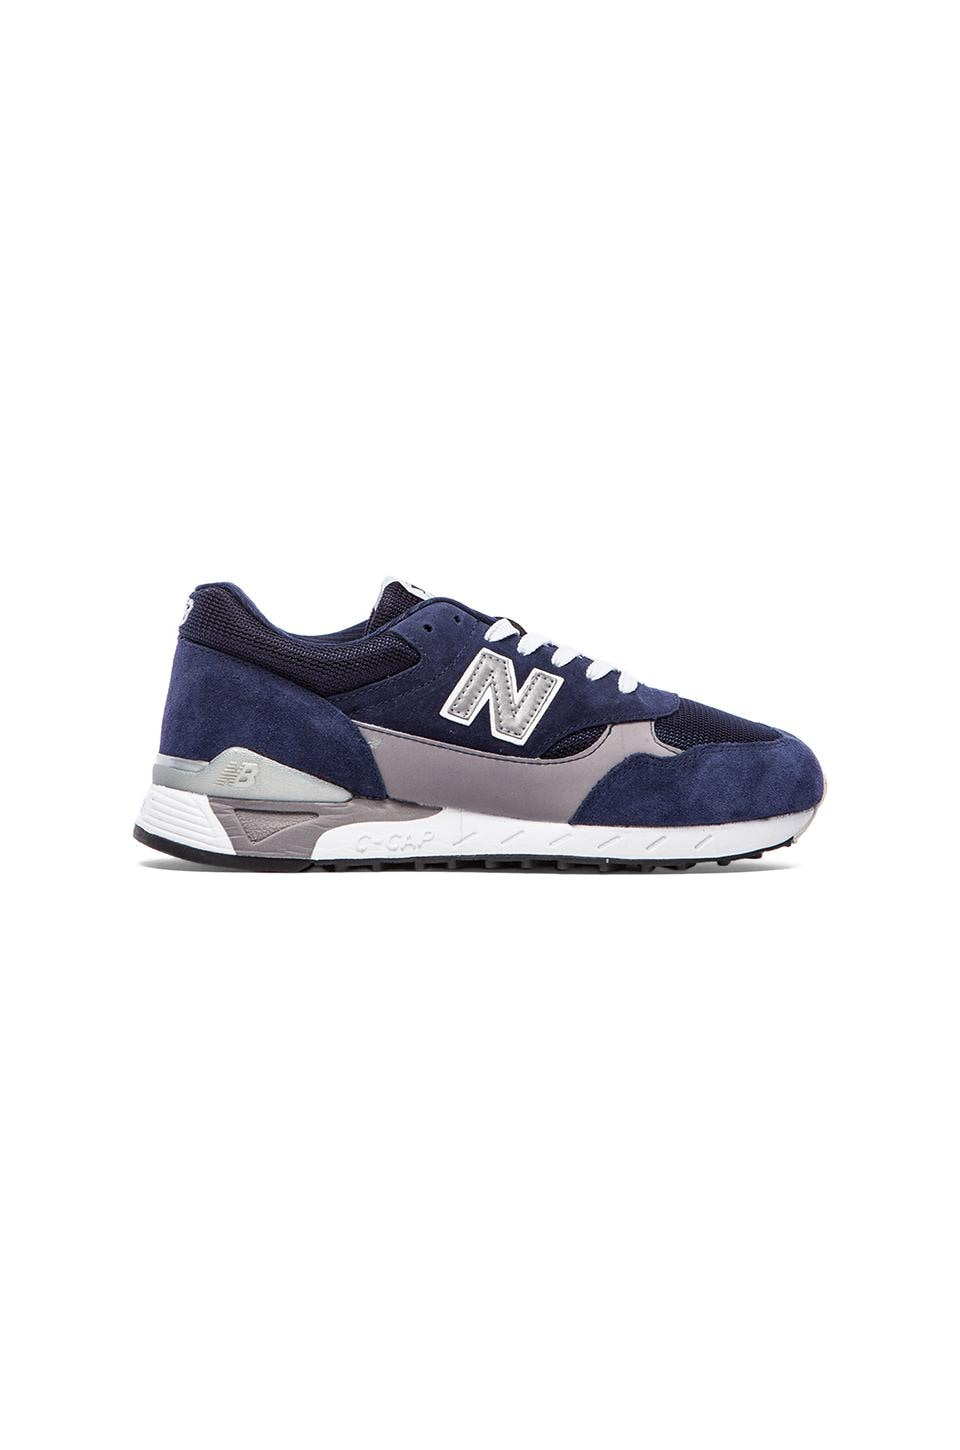 New Balance CM496 in Navy & Grey